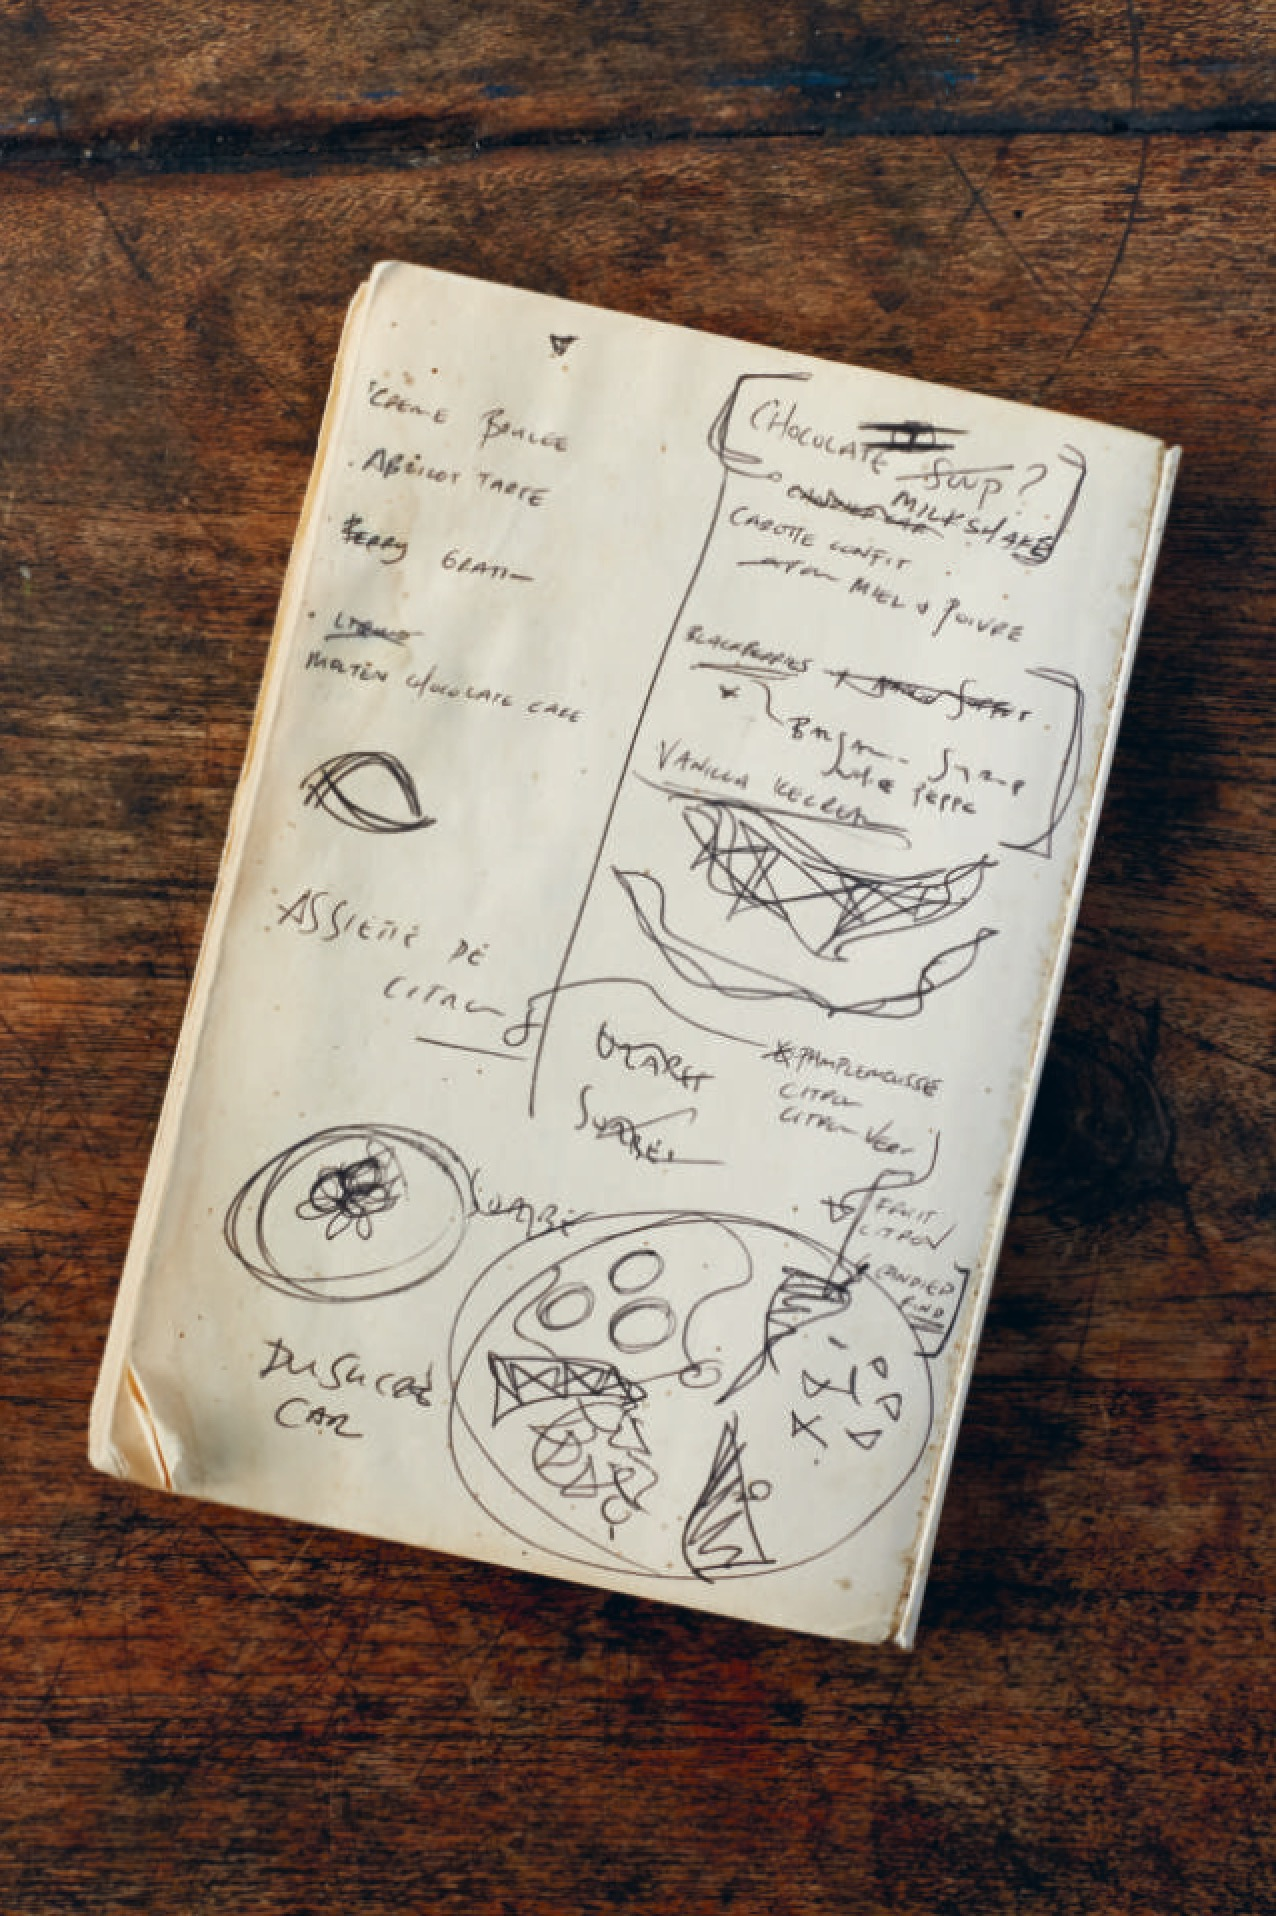 Will's scribbled pastry menu in his £Ernest Hemingway paperback